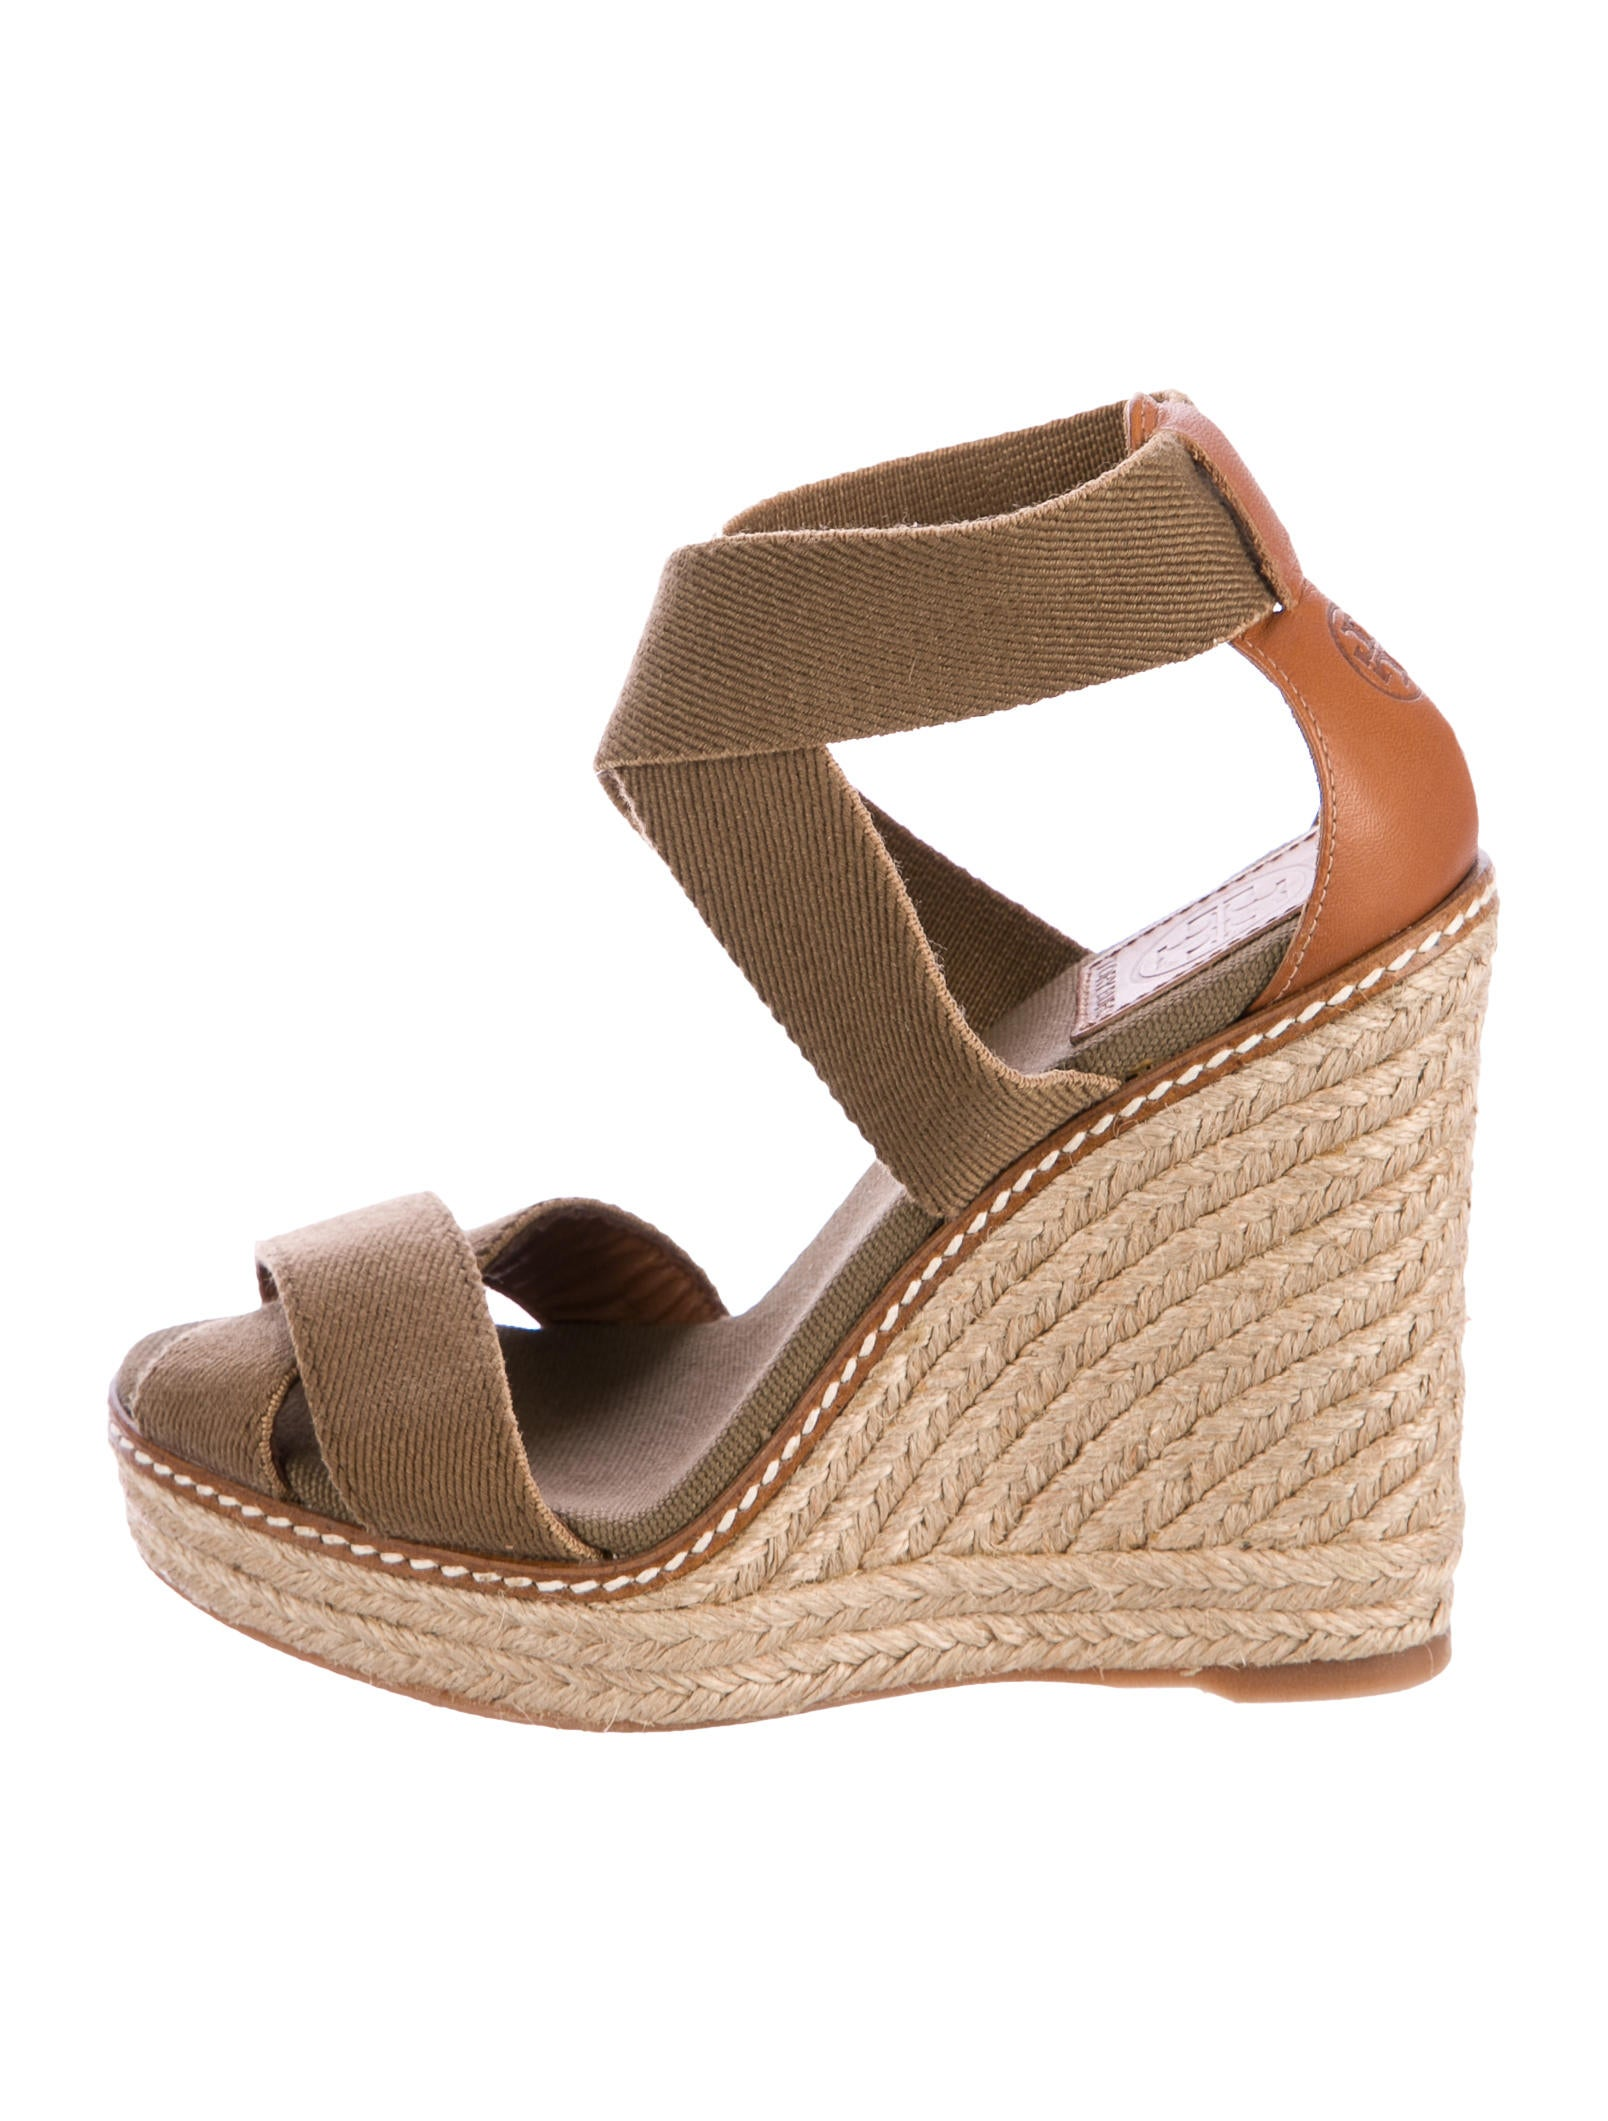 259da3a7408b6 Tory Burch Crossover Platform Wedge Sandals - Shoes - WTO111982 ...